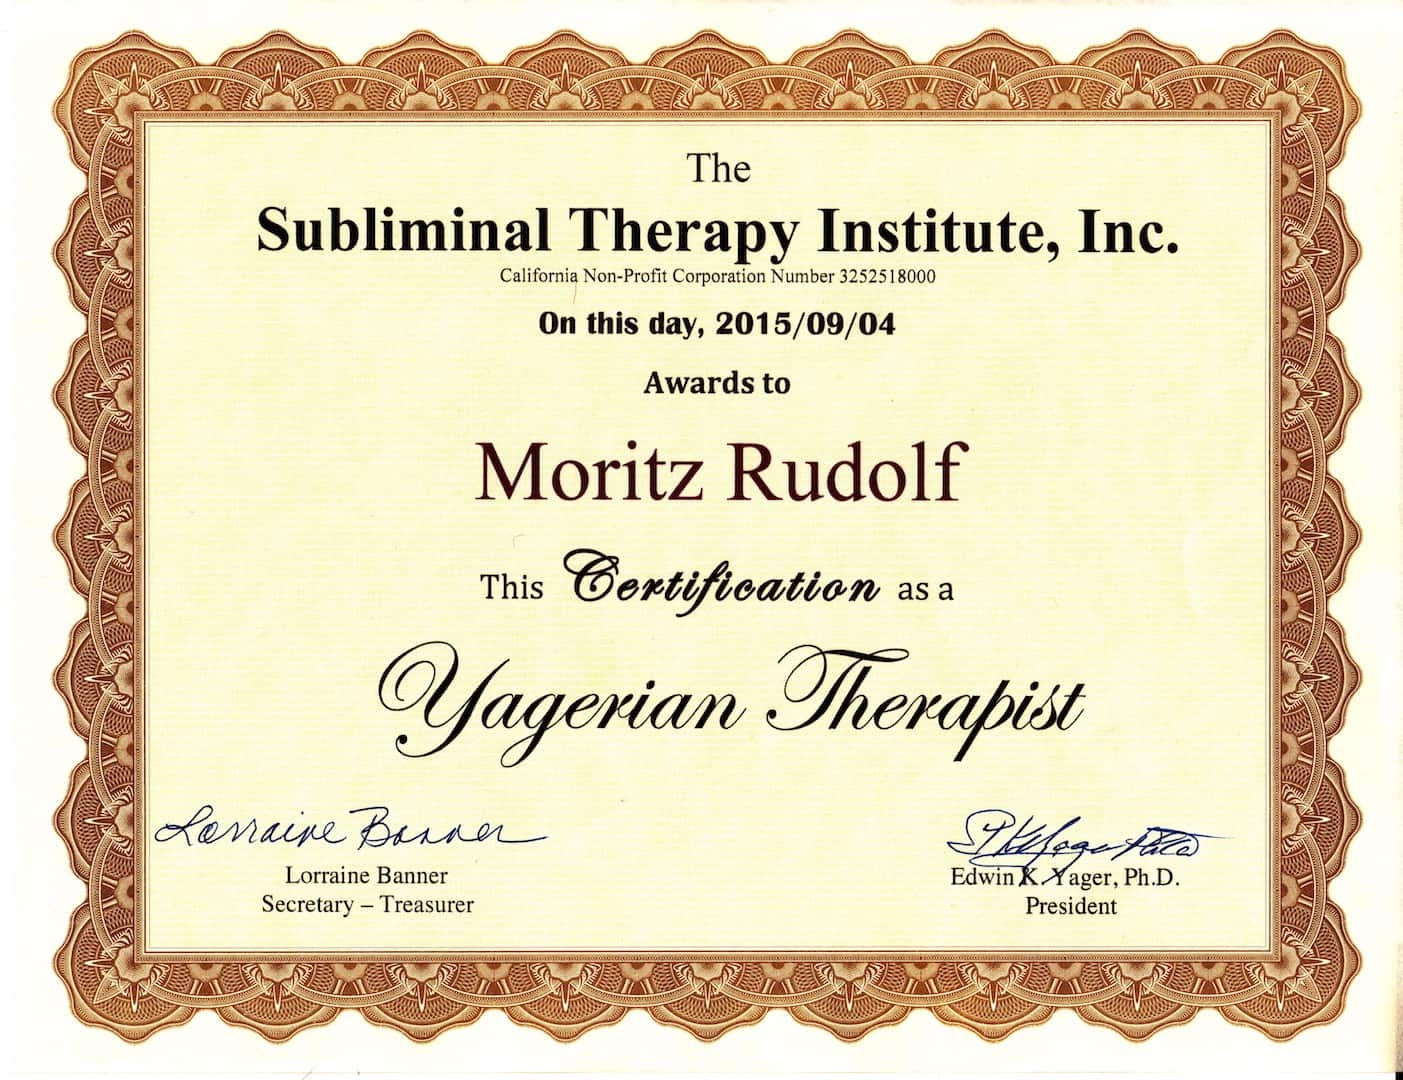 Cert. Yagerian Therapist NEW - Home